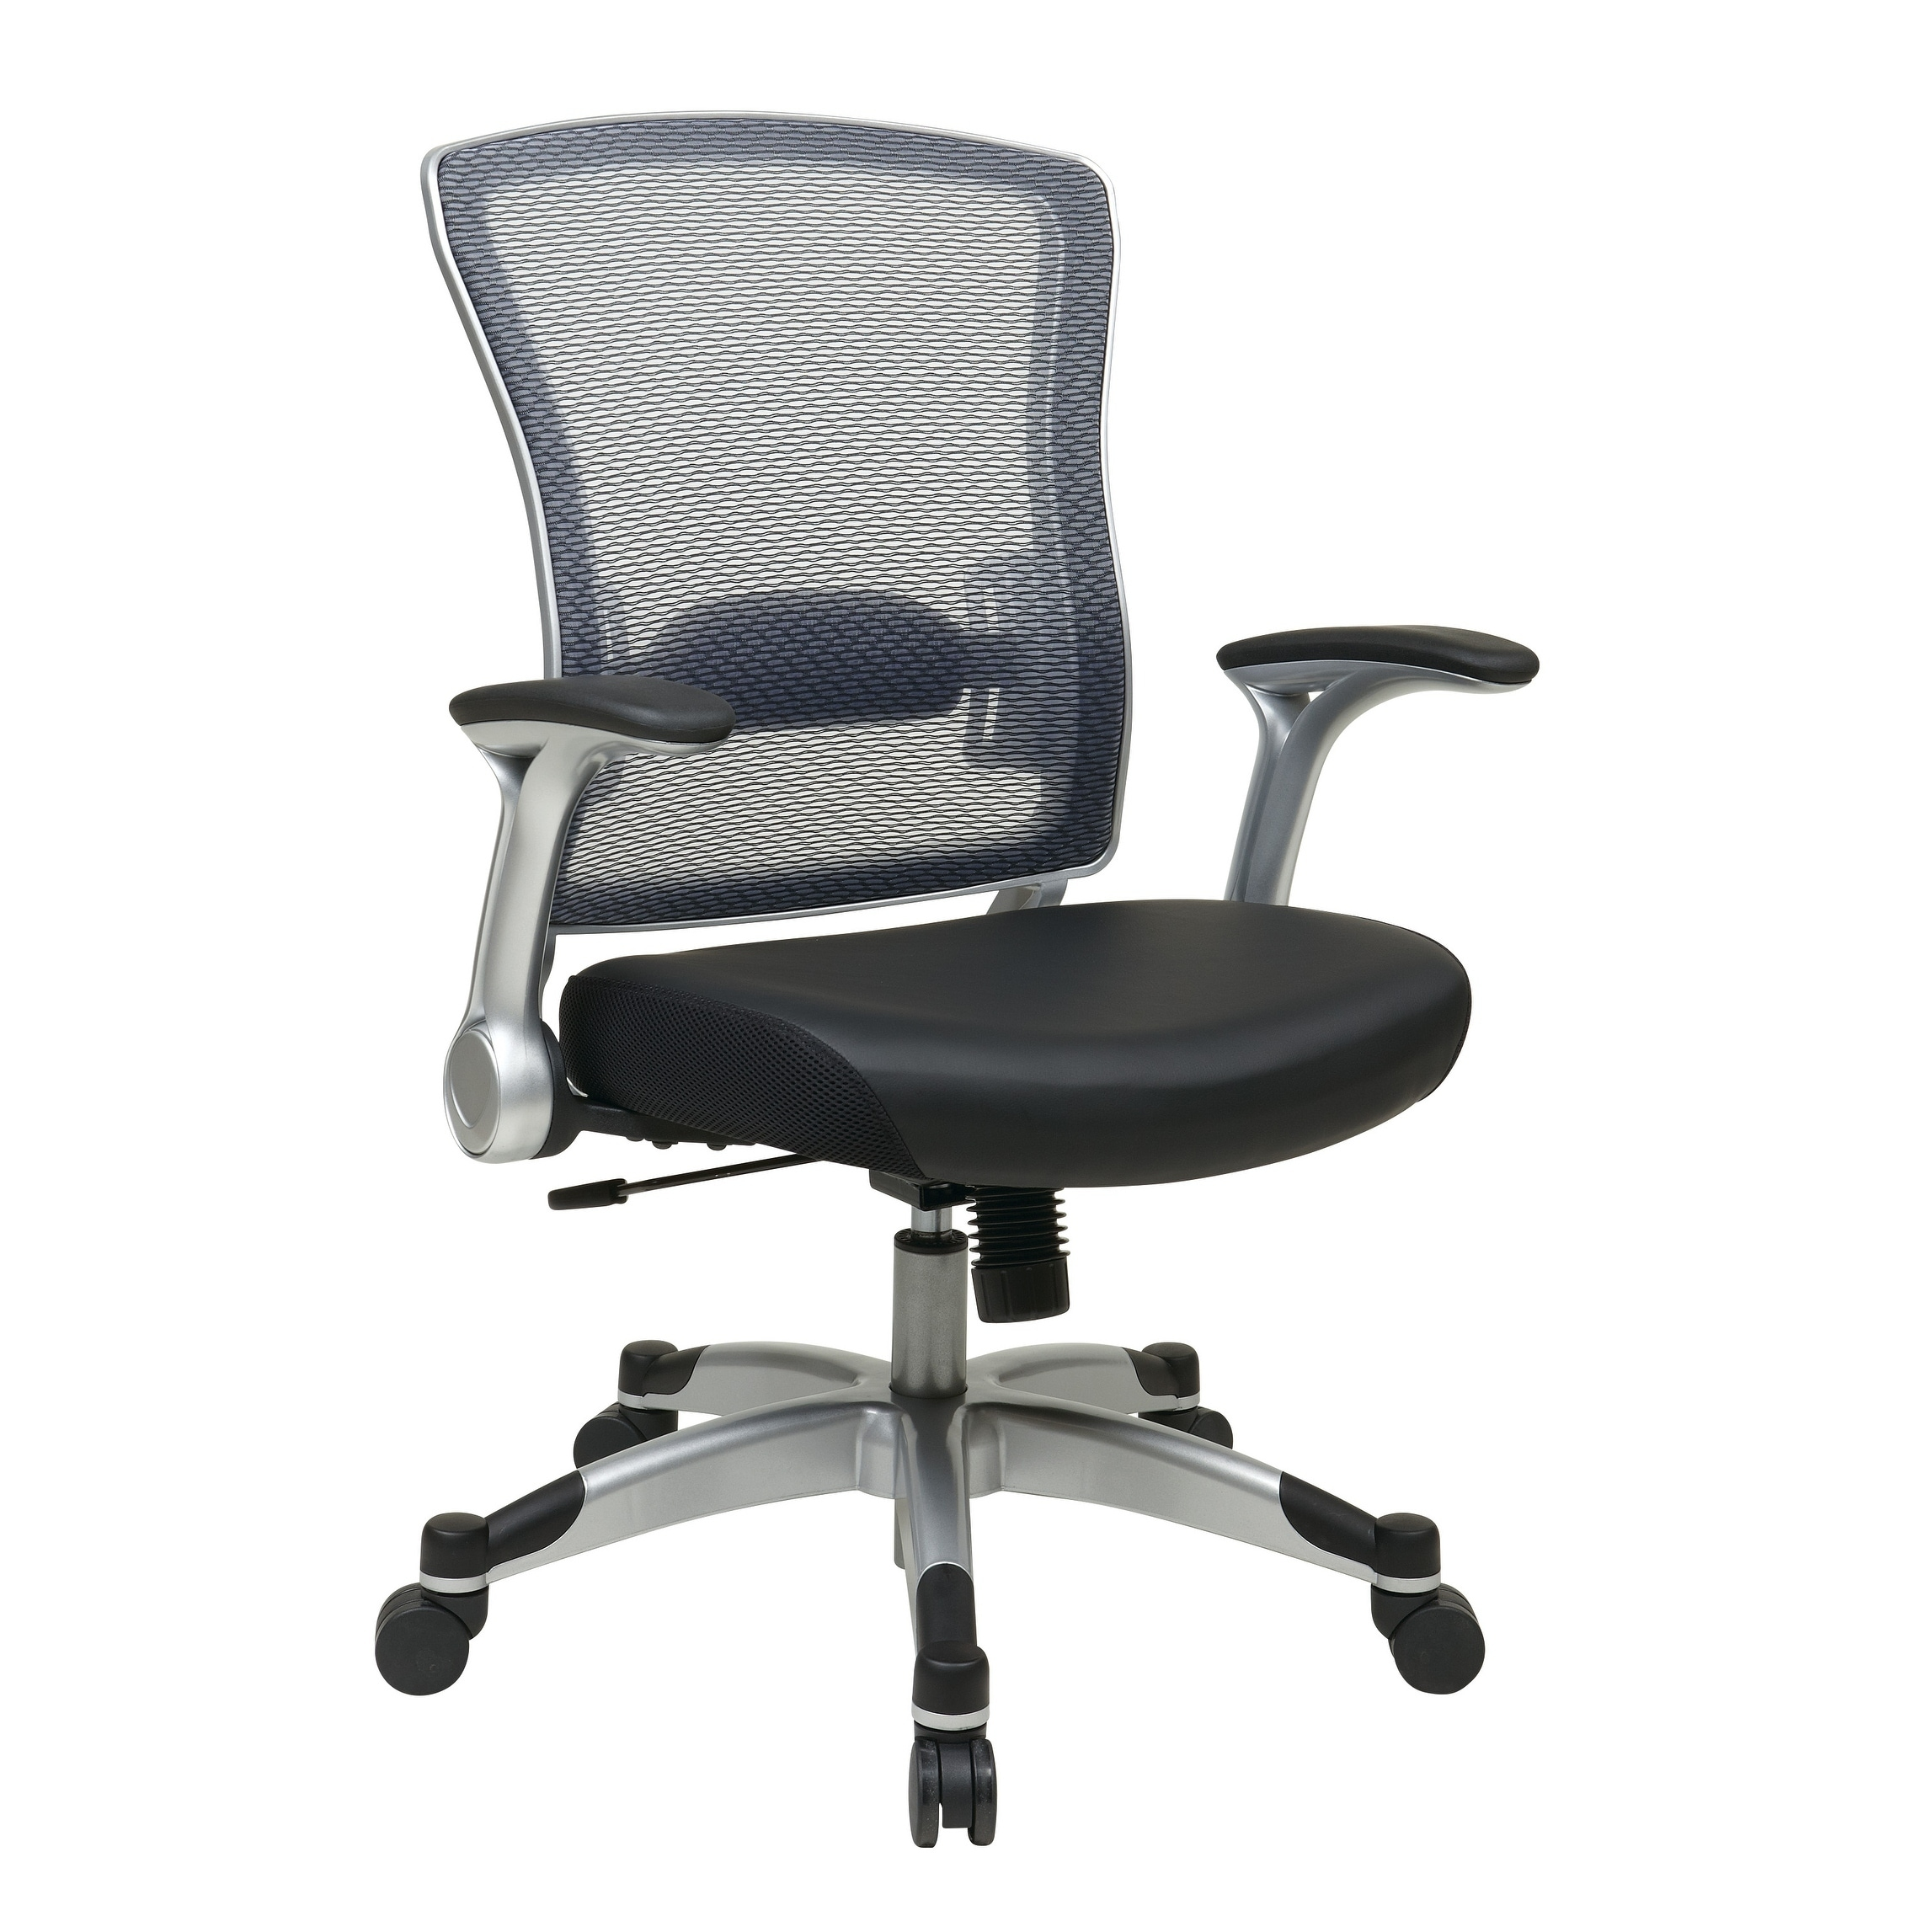 Executive Mesh Office Chair With Built In Lumbar Support